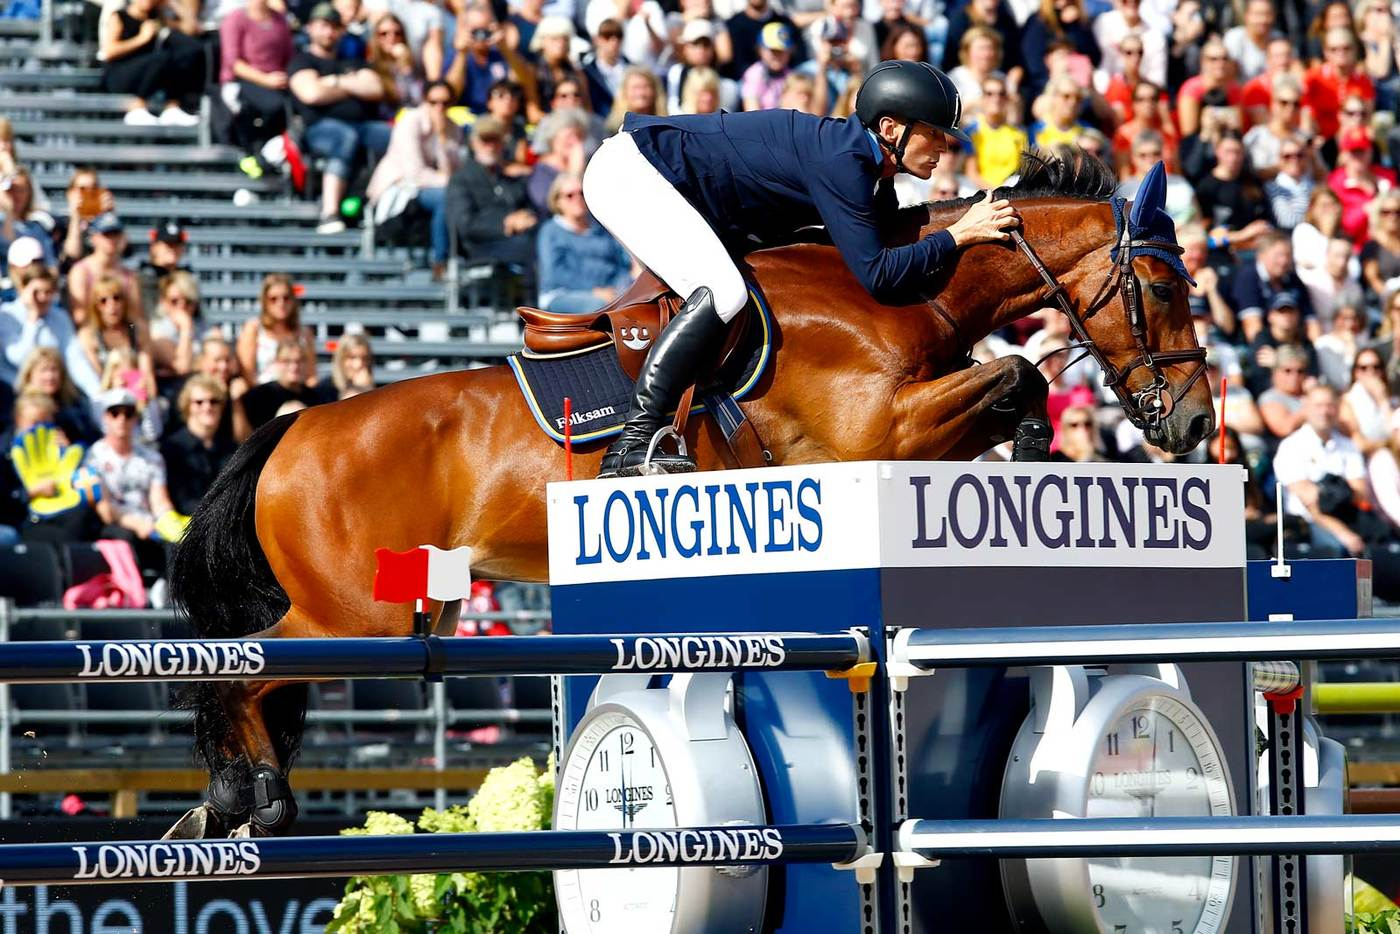 Longines Show Jumping Event: The Longines FEI European Championships: performance at its peak   3